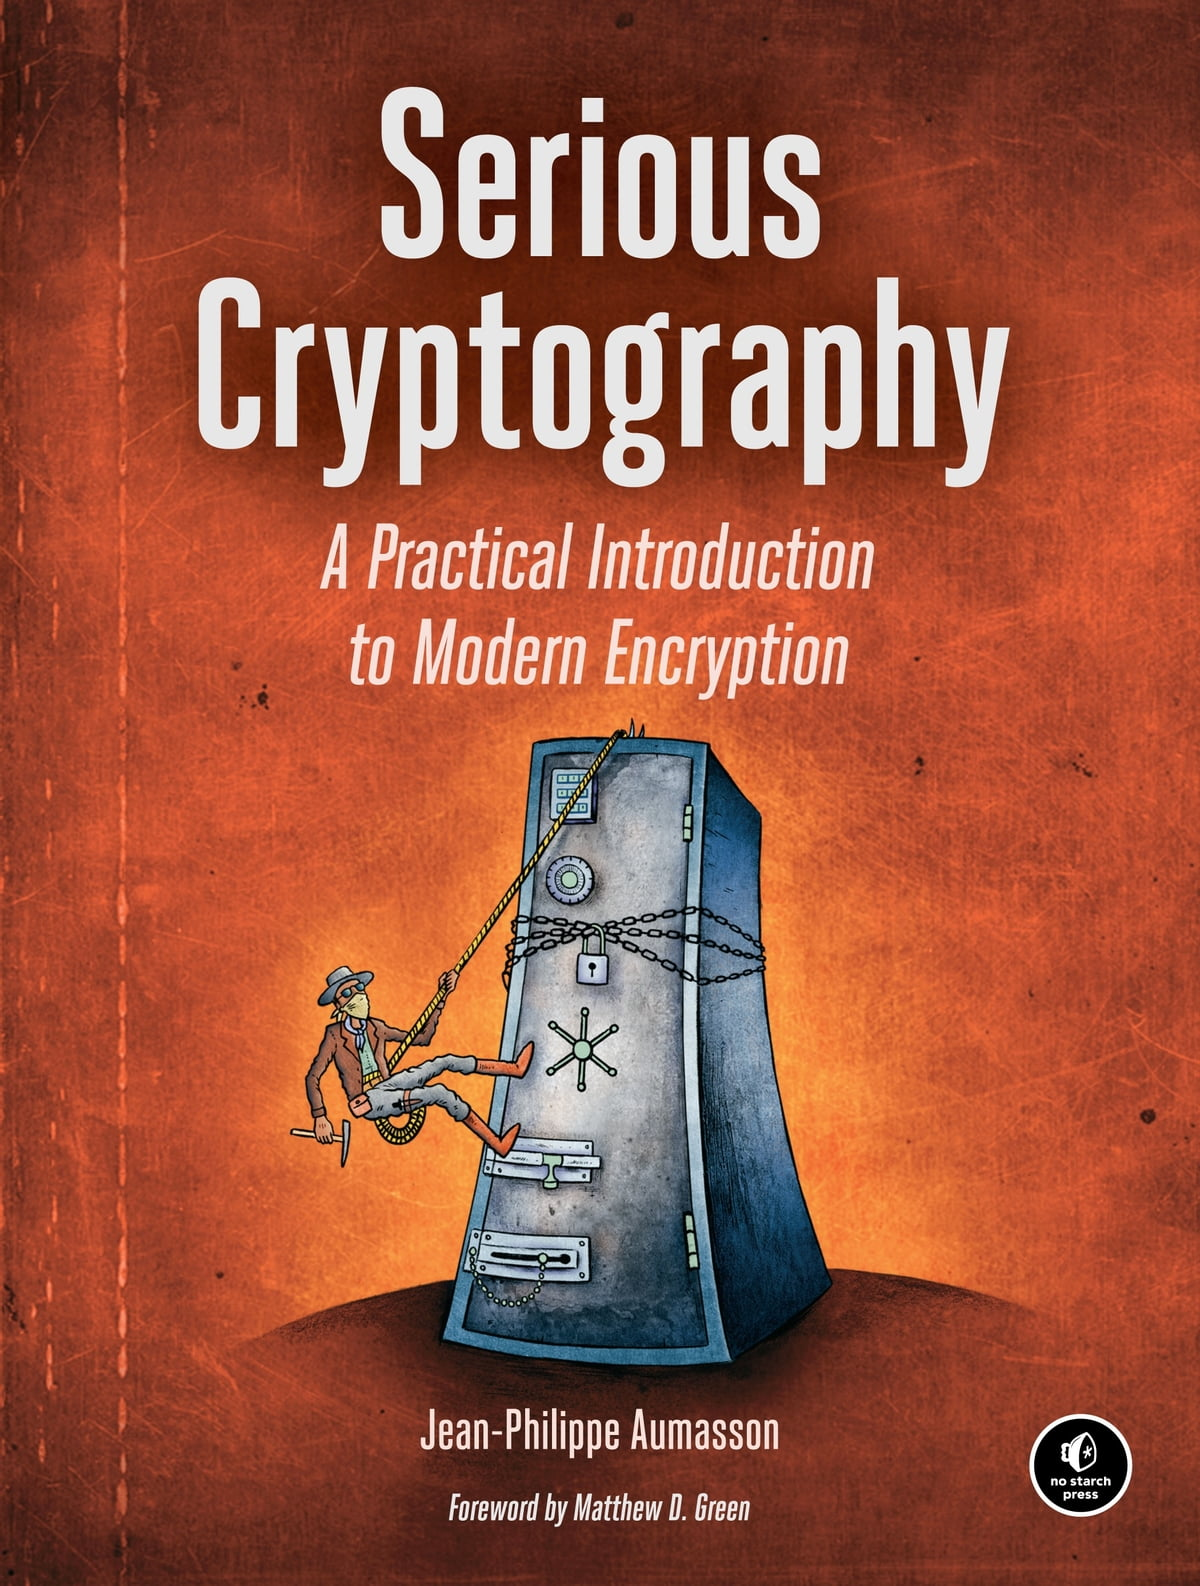 Introduction to parallel computing ebook by zbigniew j czech serious cryptography a practical introduction to modern encryption ebook by jean philippe aumasson fandeluxe Gallery